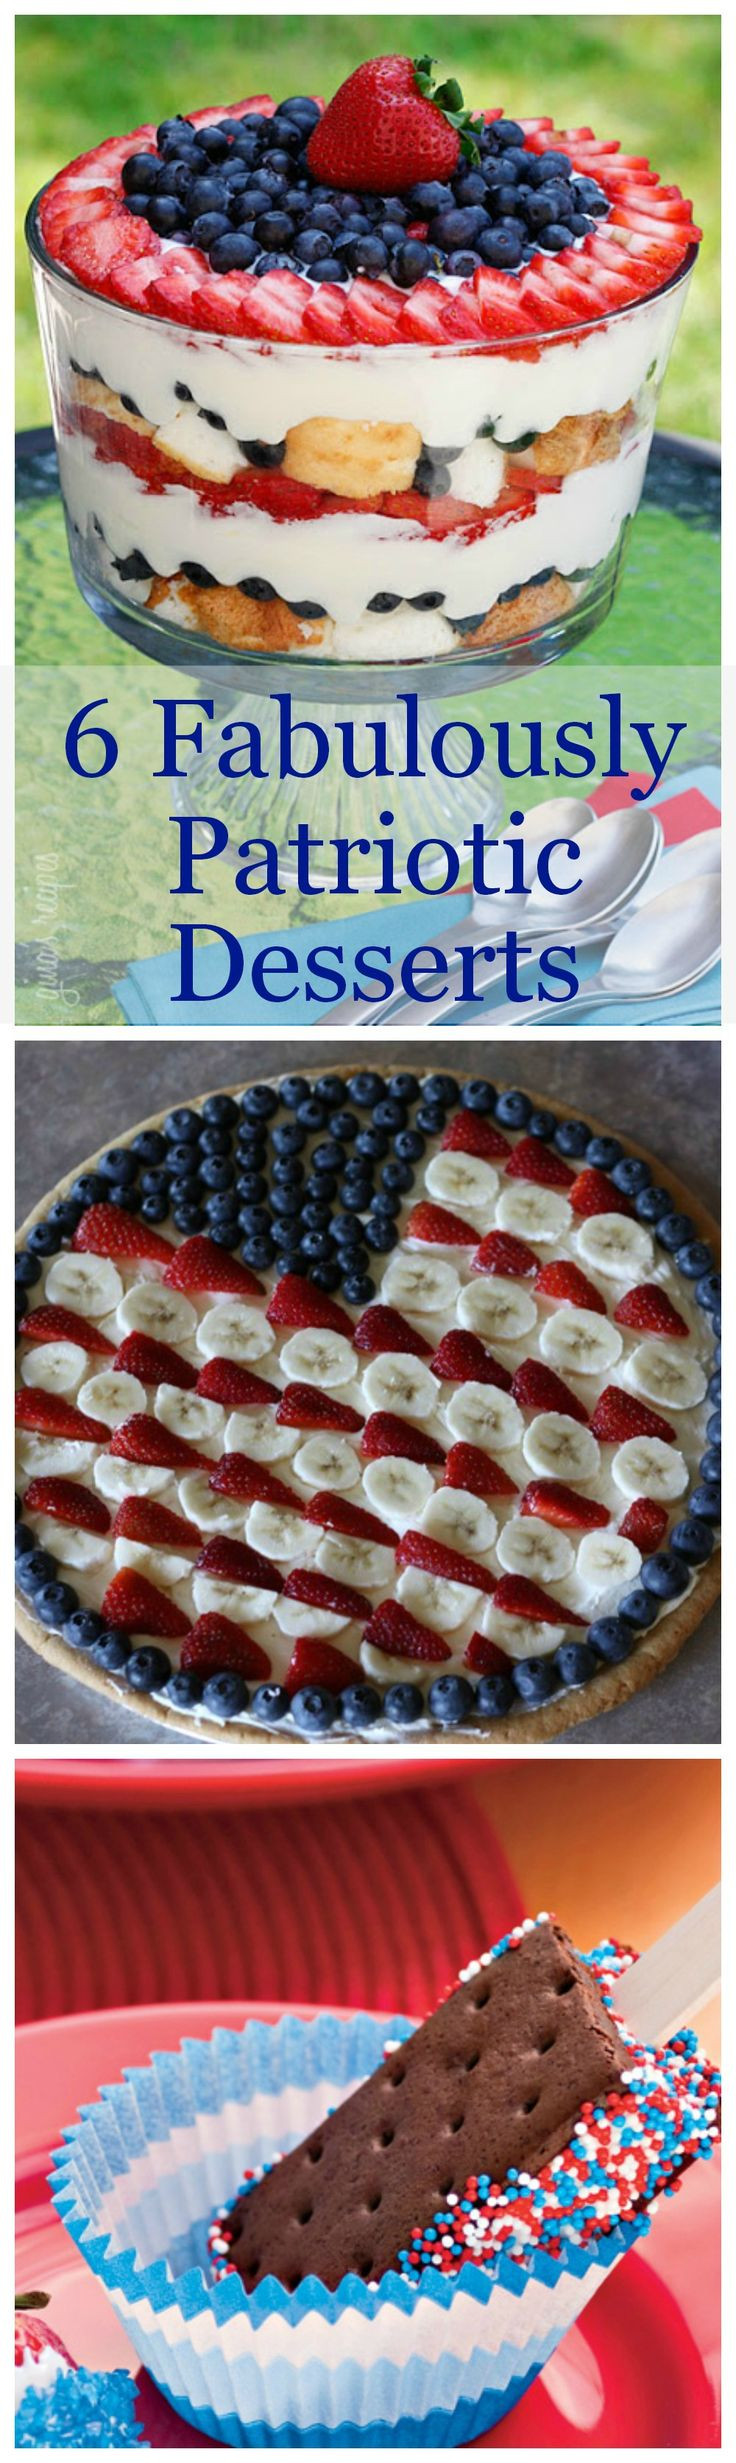 Desserts For 4Th Of July  Last Minute 4th of July Dessert Ideas